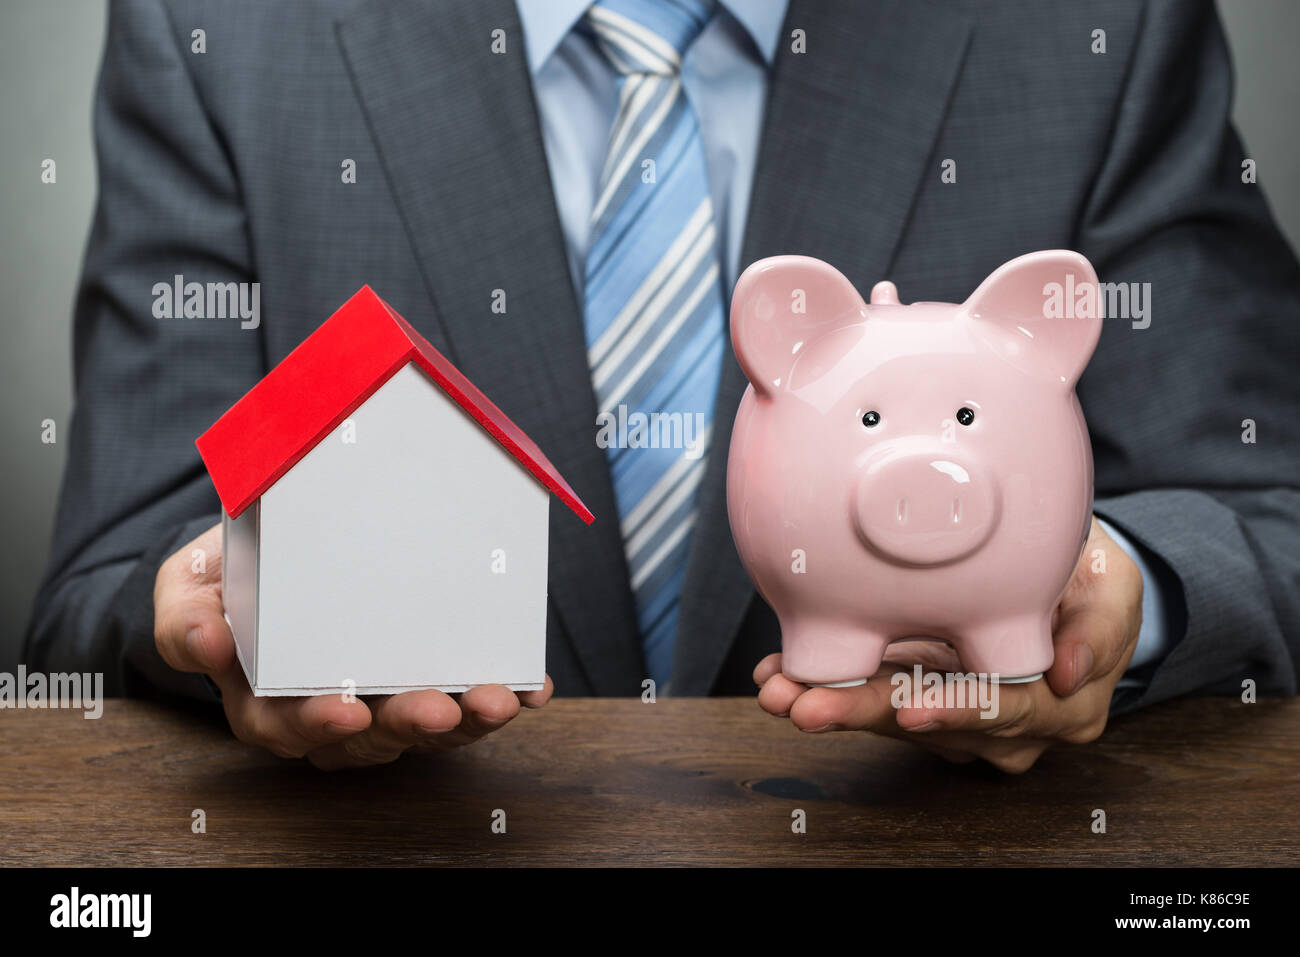 Businessperson Hands Holding A Piggy Bank And House Model At Desk - Stock Image